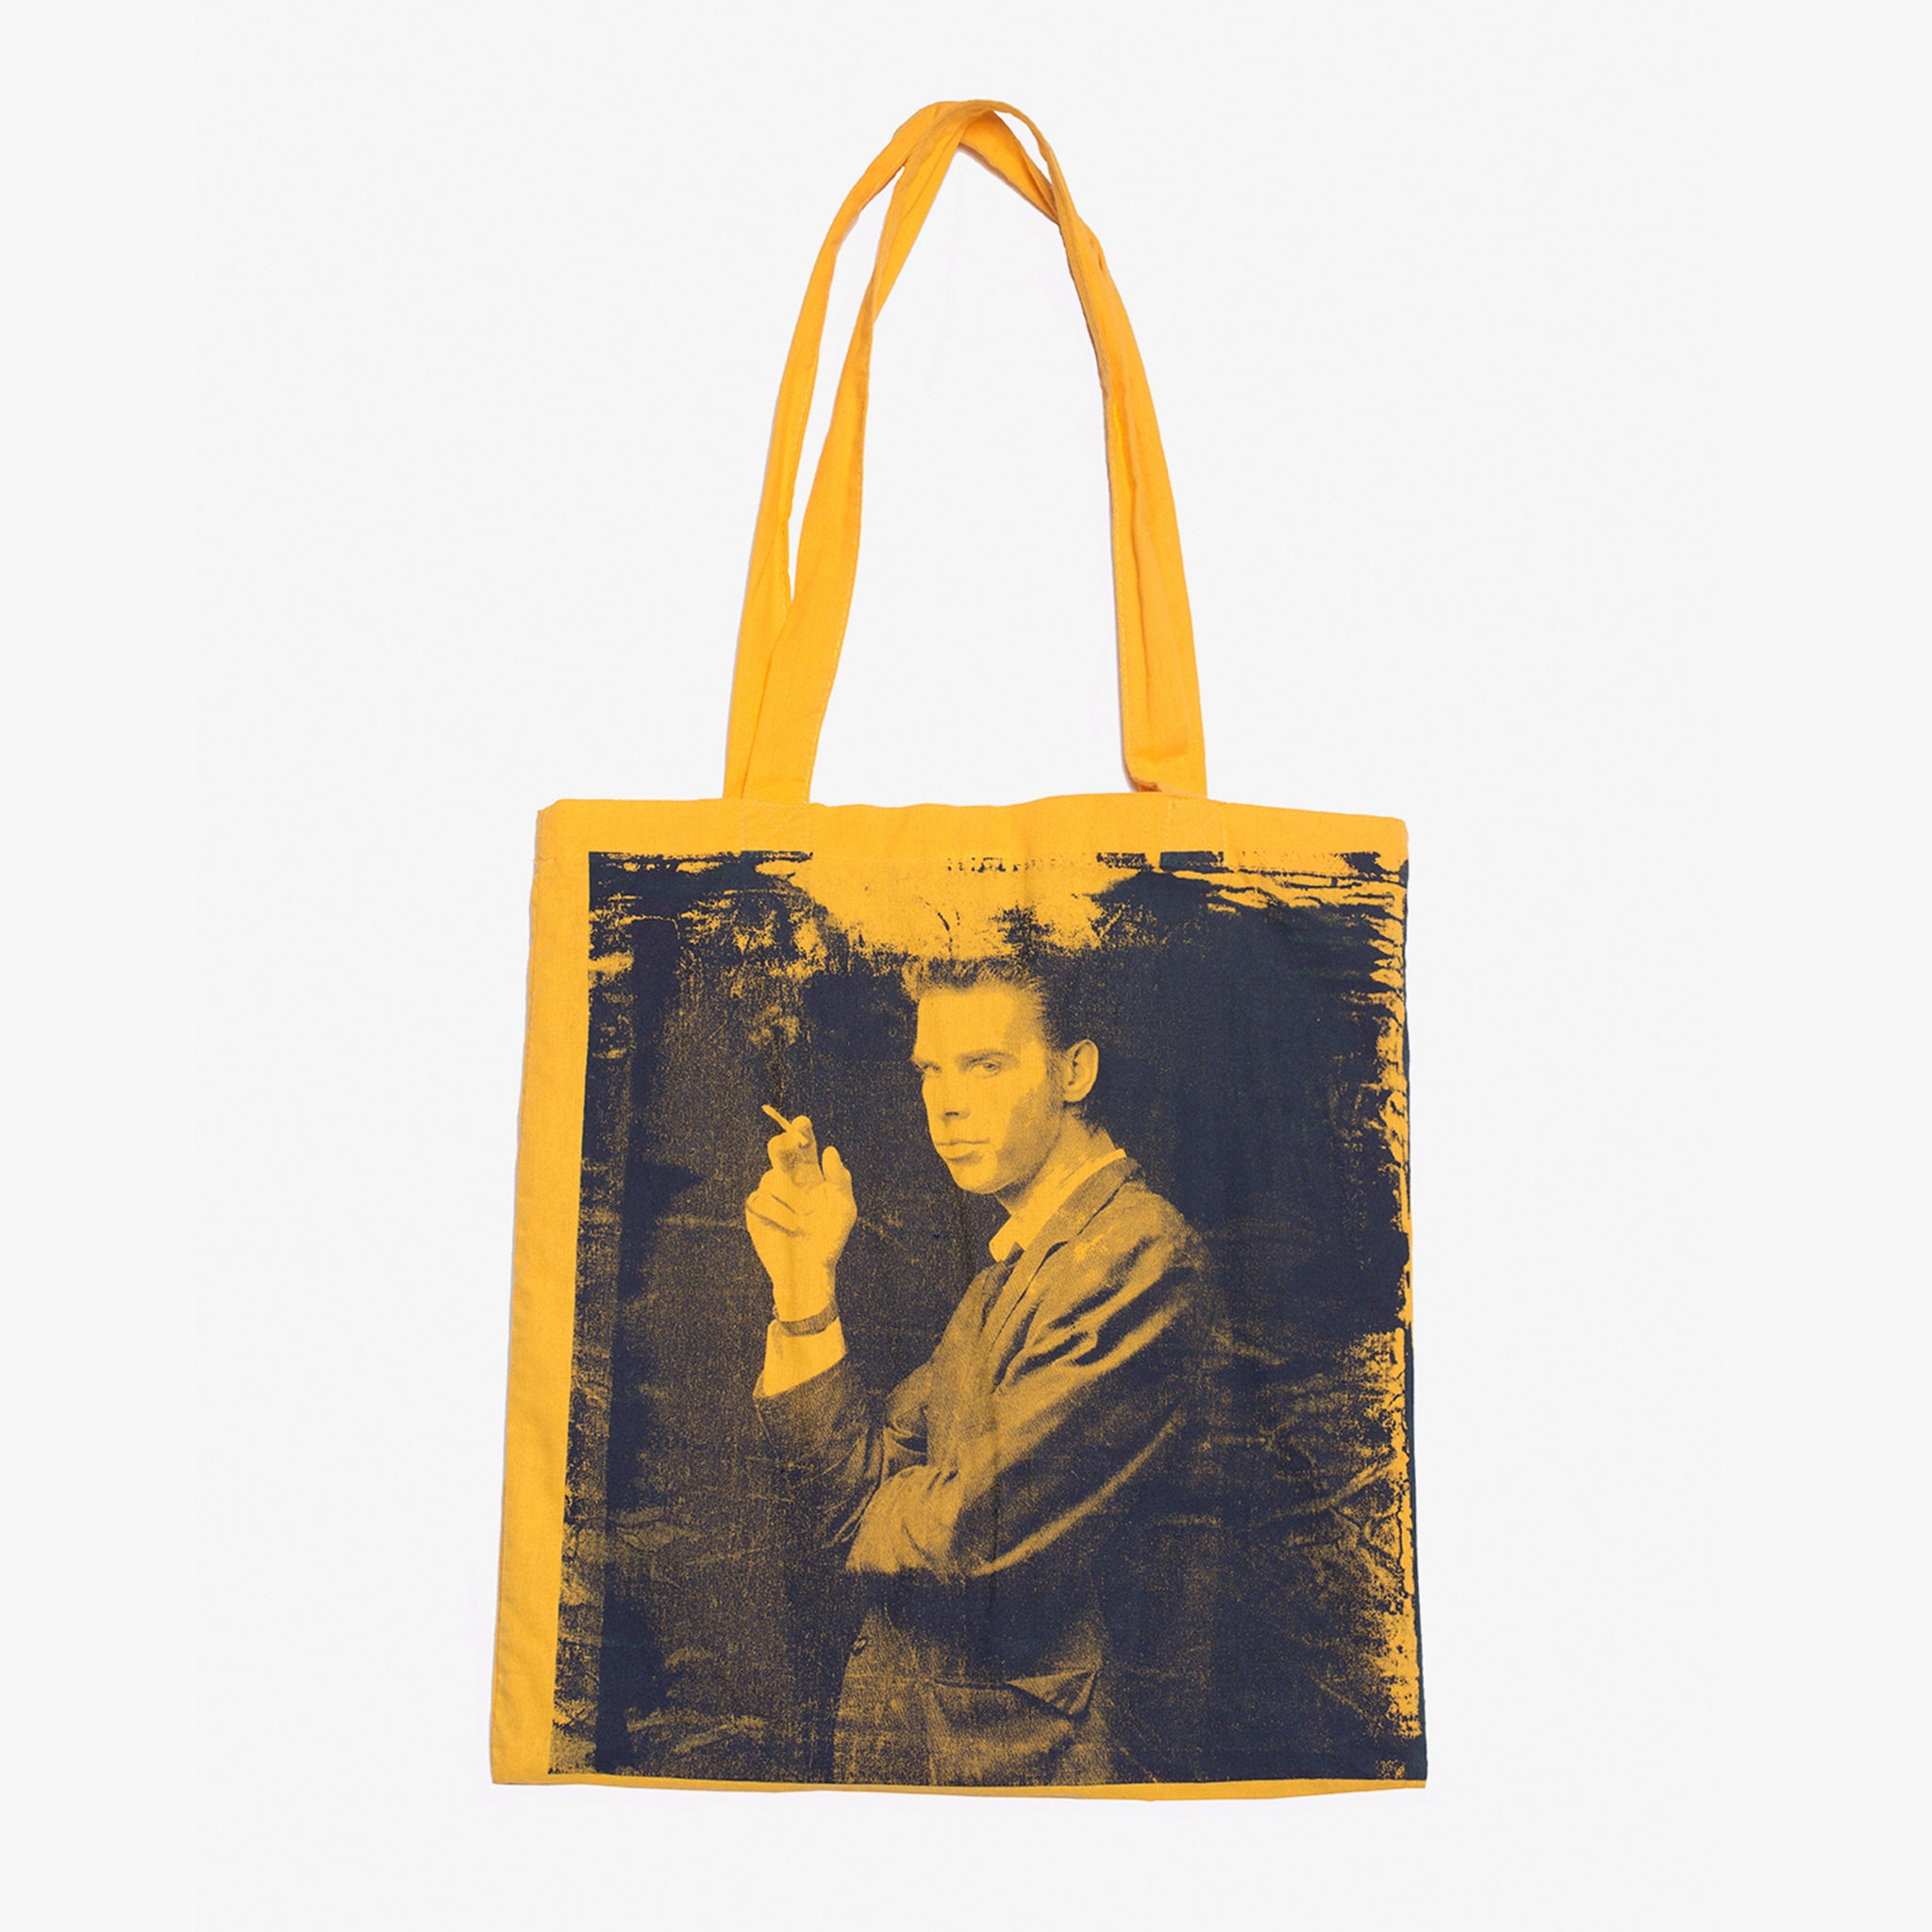 DANIEL MAYER ARCHIVE NickCave Bag